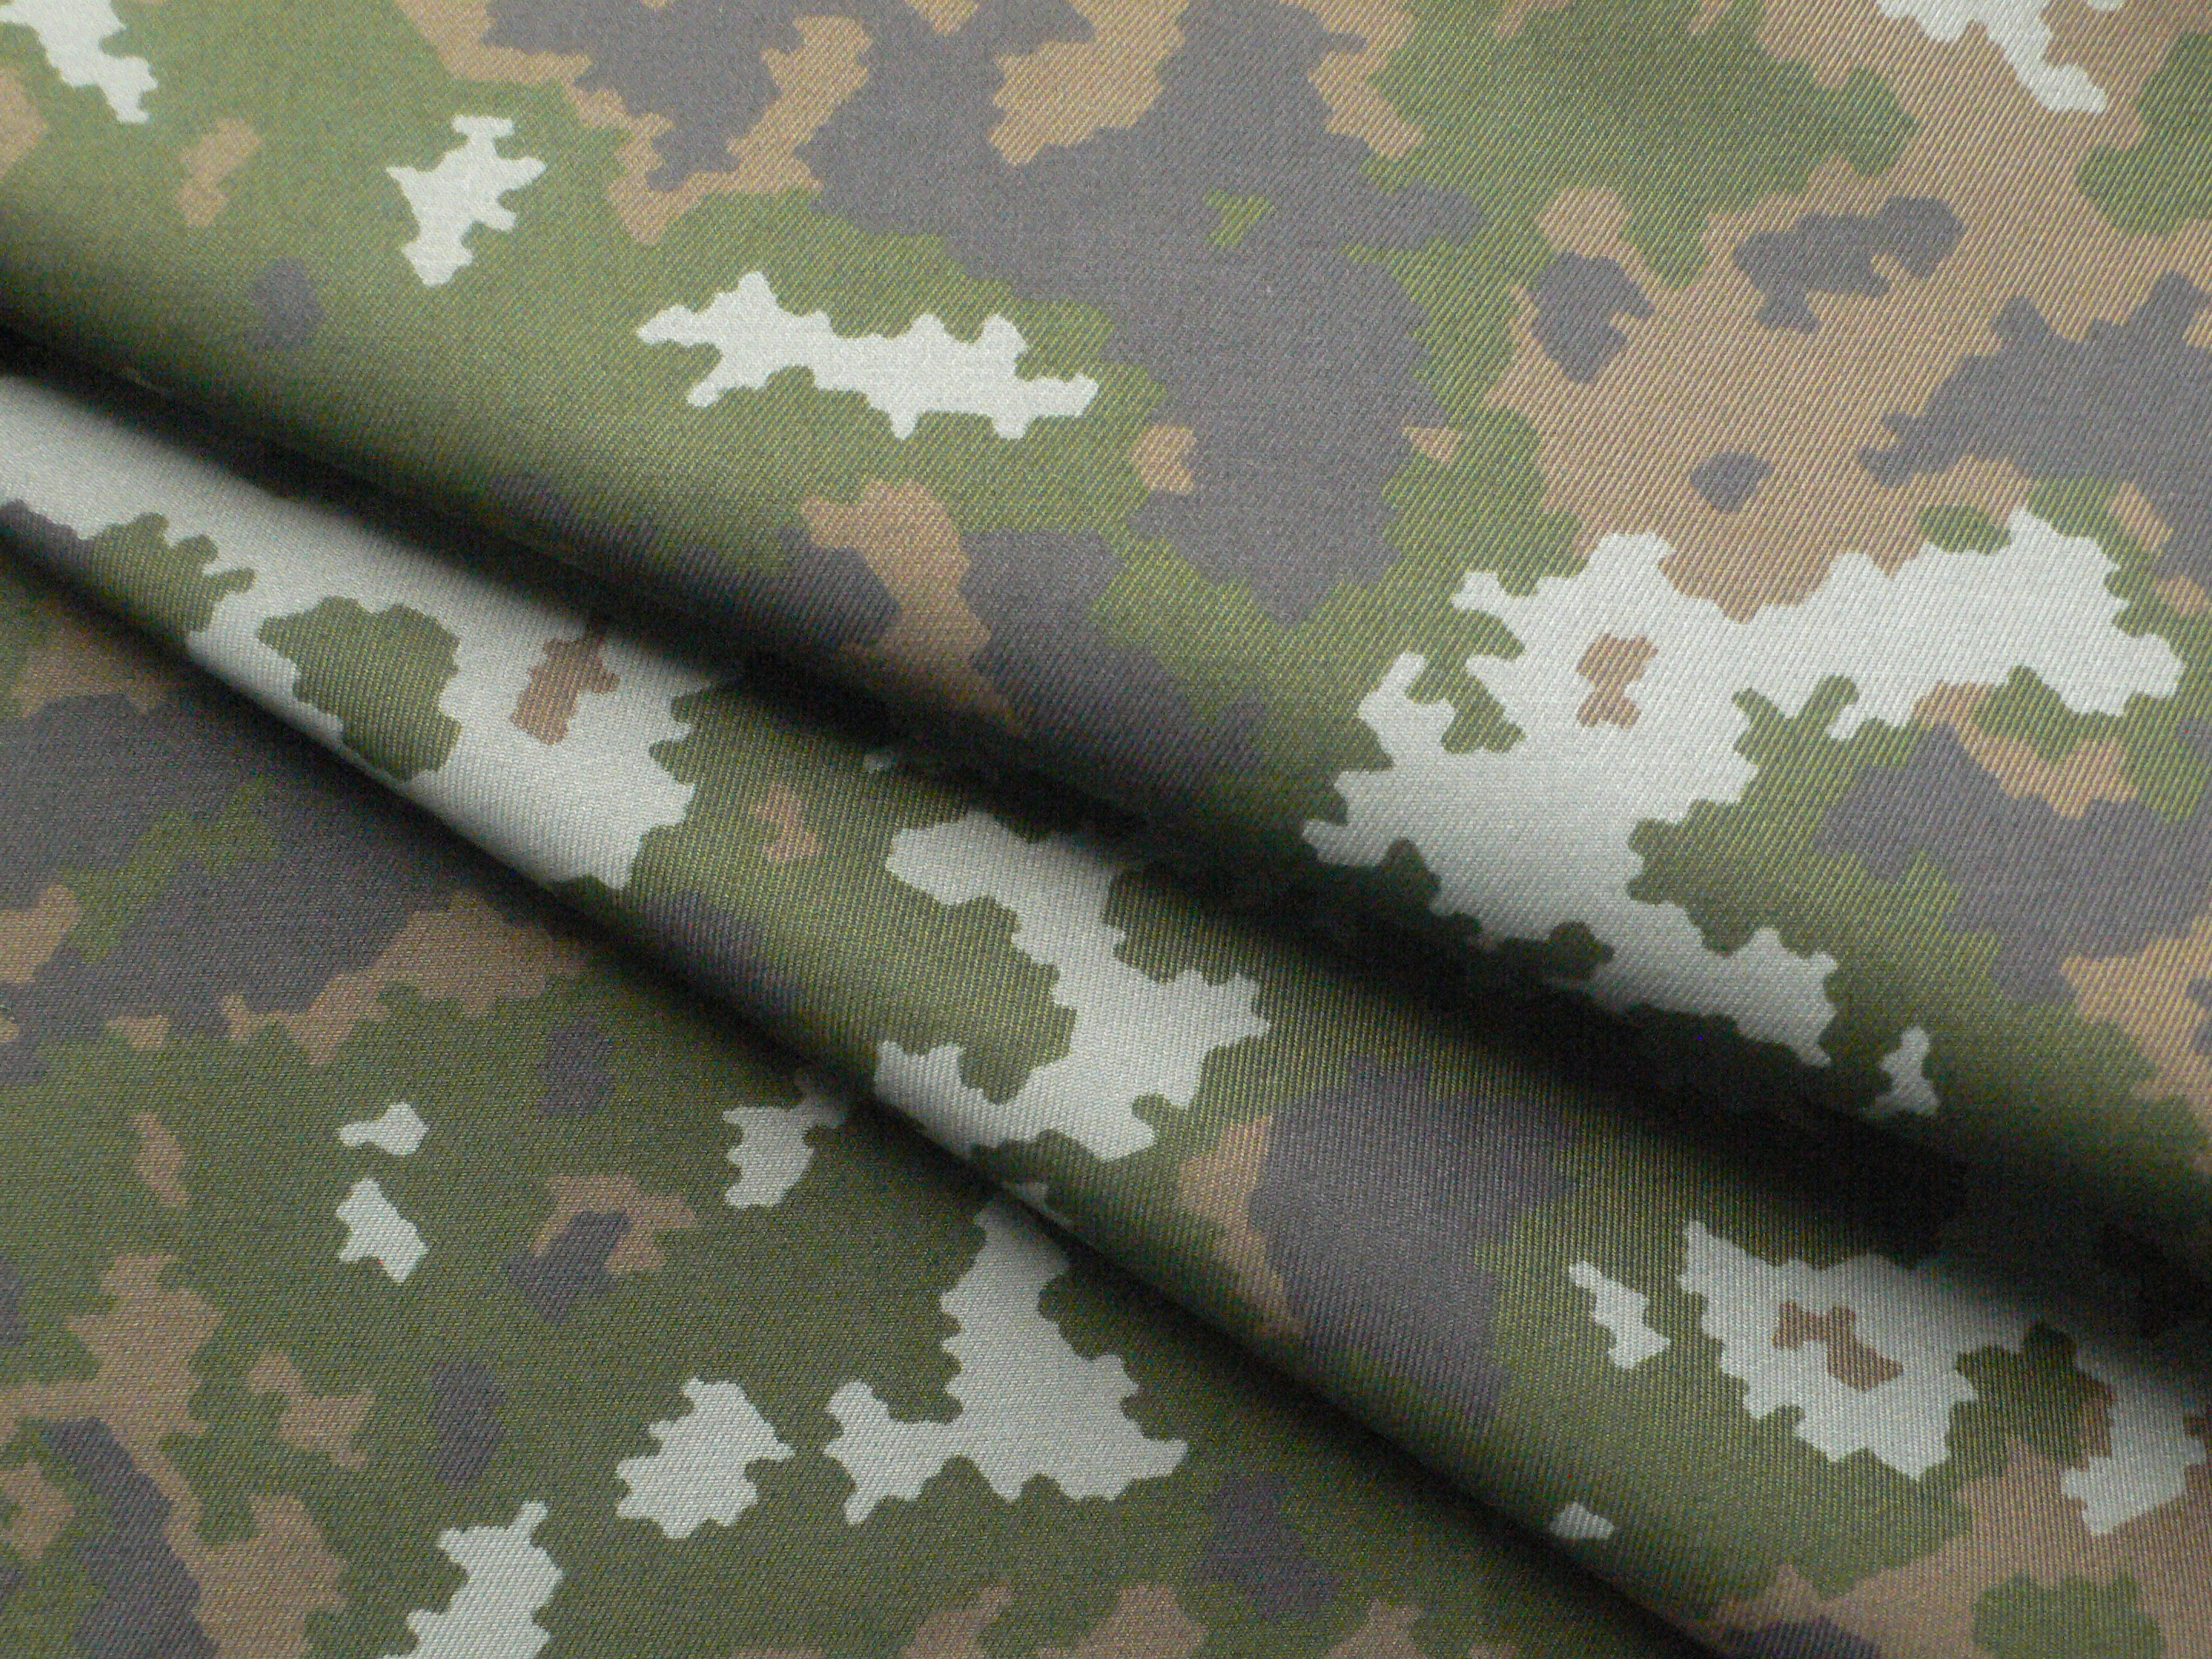 CVC Twill Digital Camouflage Fabric with IR and Anti-mosquito